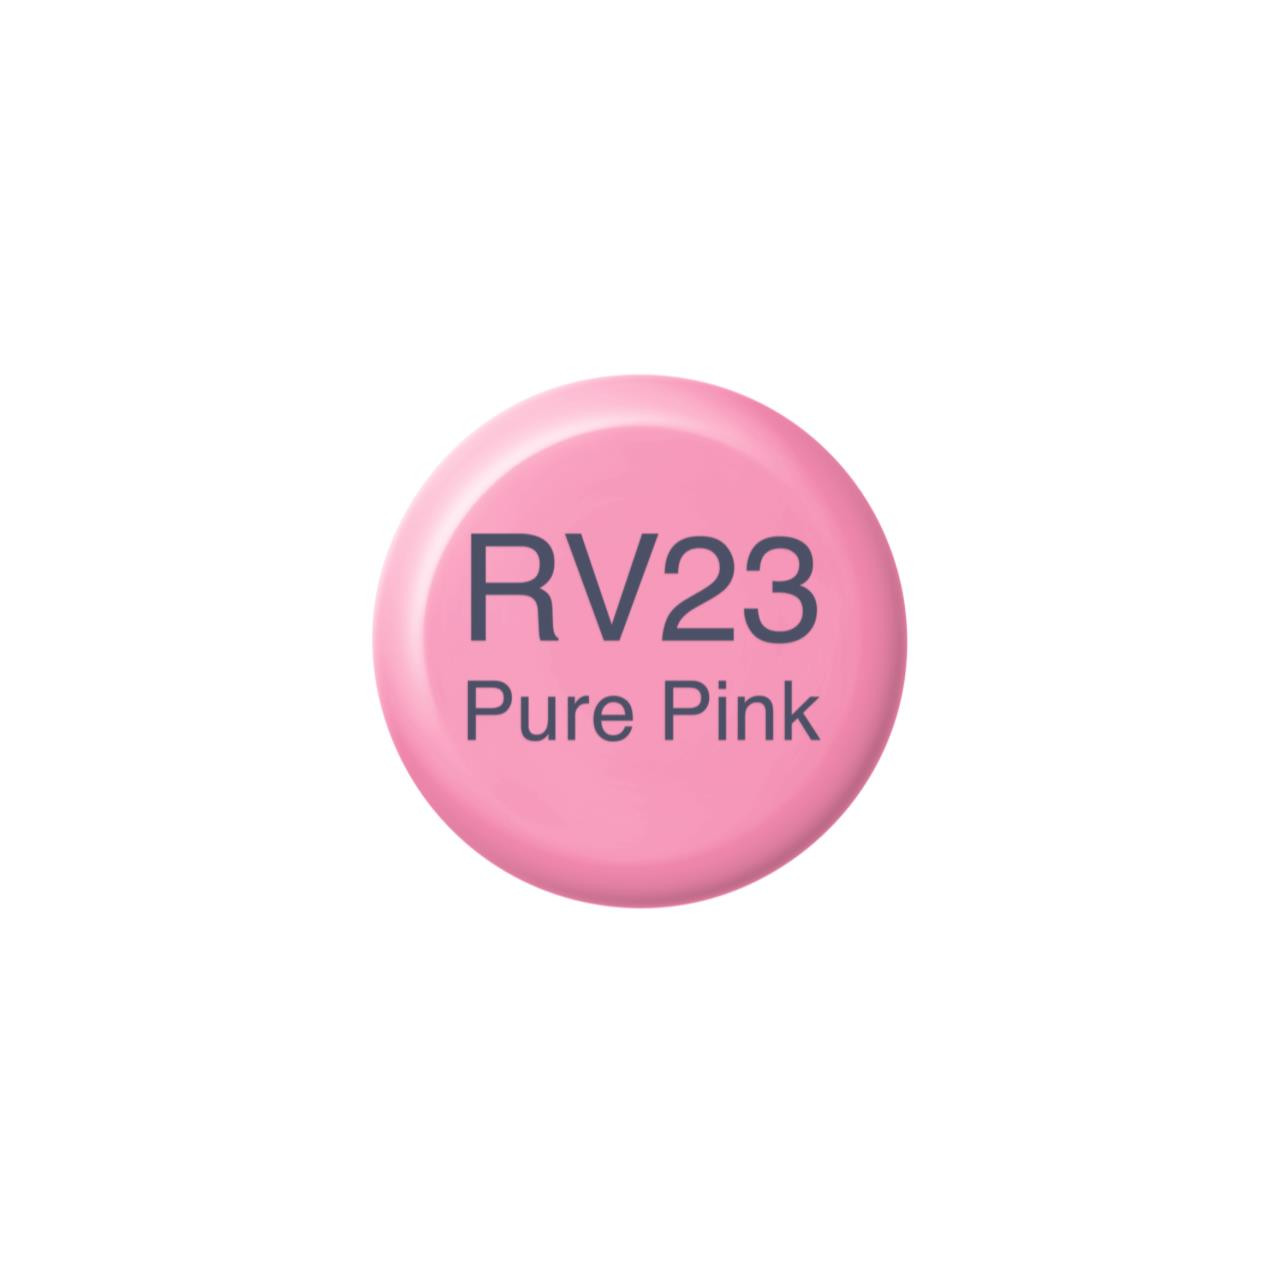 RV23 Pure Pink, Copic Ink - 4511338057803